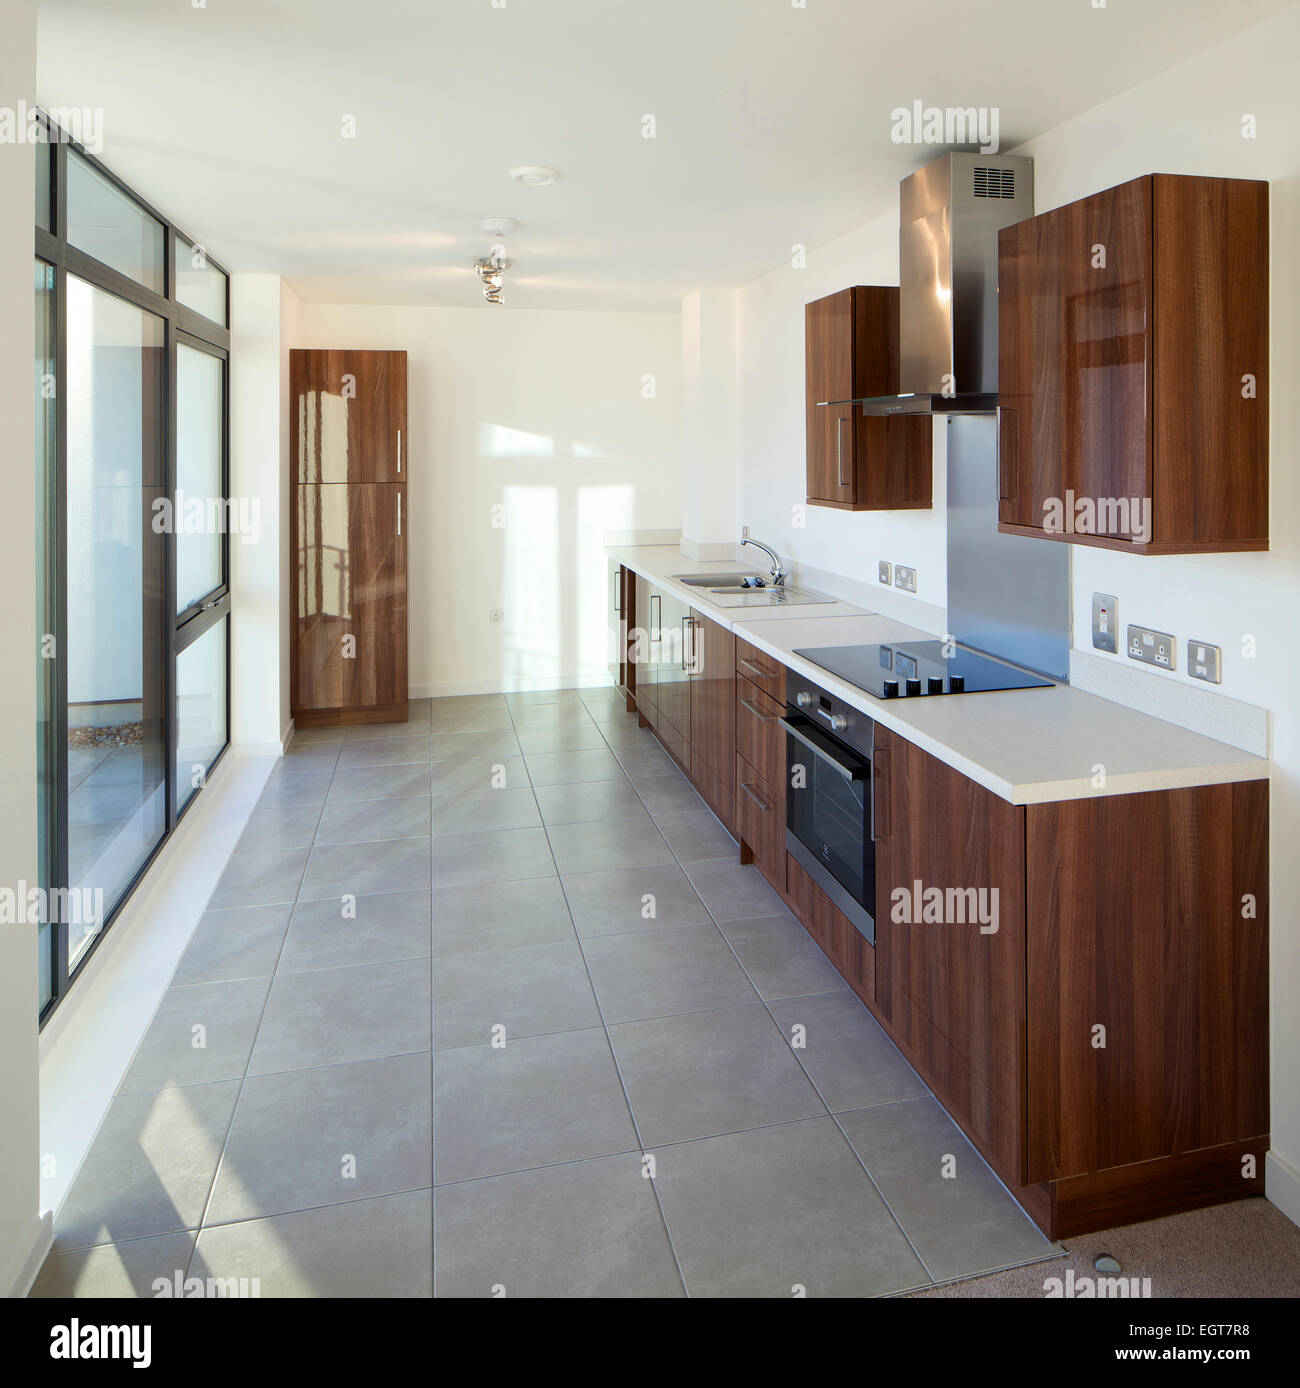 Fitted Kitchen In Show Home Development Of Houses, Flats And A Leisure  Centre By Wates Construction For John Laing, Croydon, London, UK